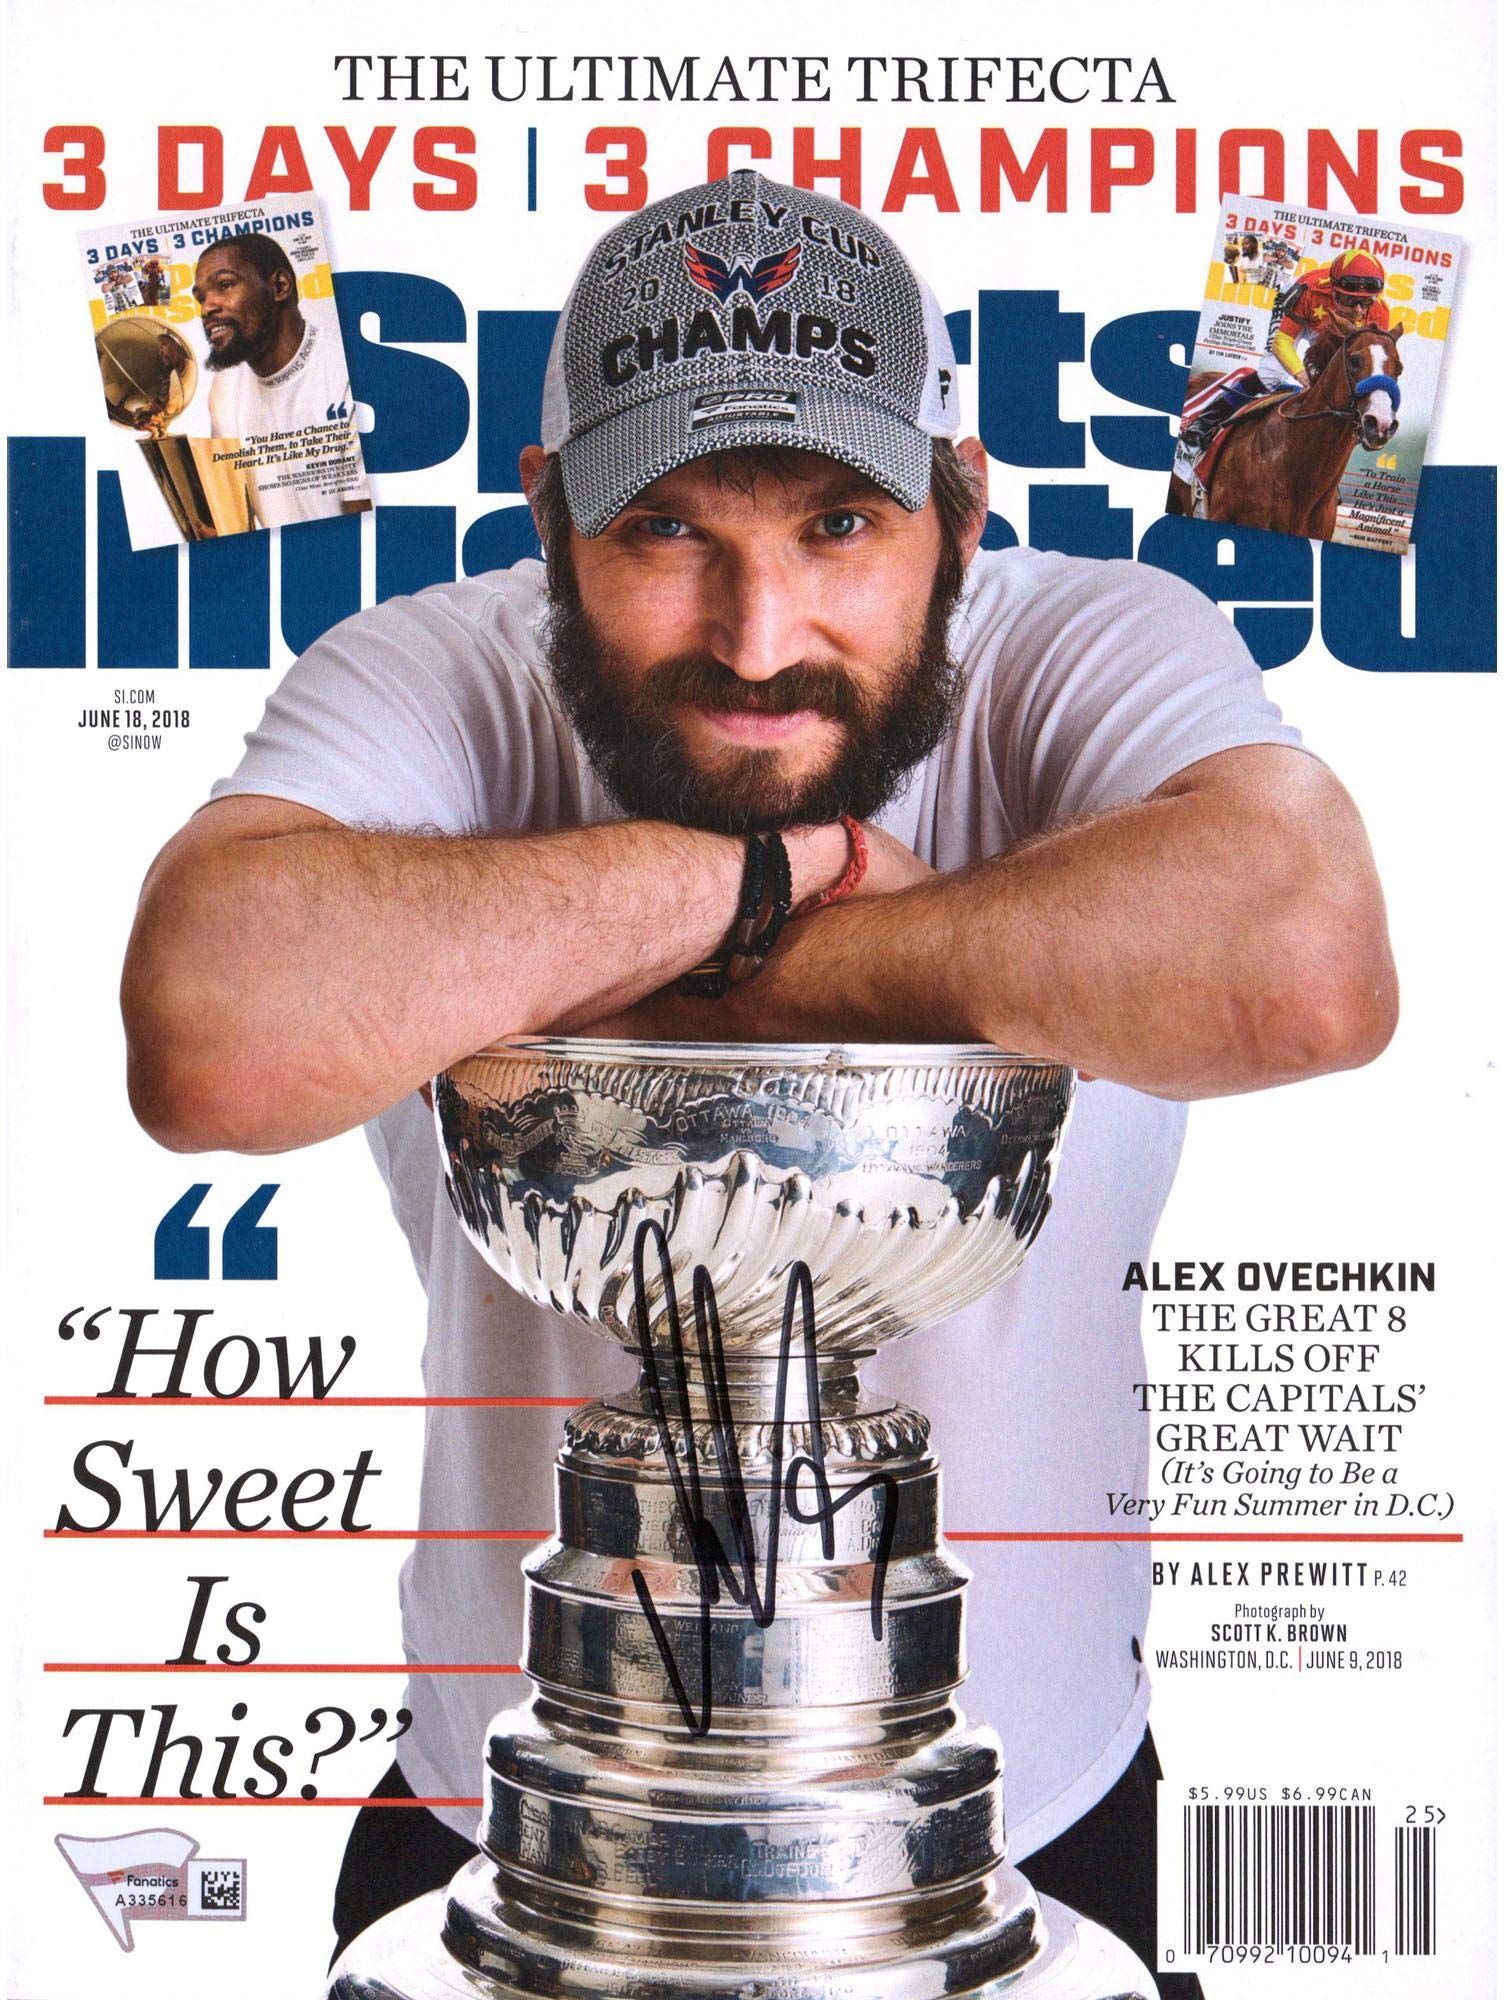 Alex Ovechkin Washington Capitals 2018 Stanley Cup Champions Autographed June 10, 2018 Sports Illustrated Magazine Fanatics Authentic Certified